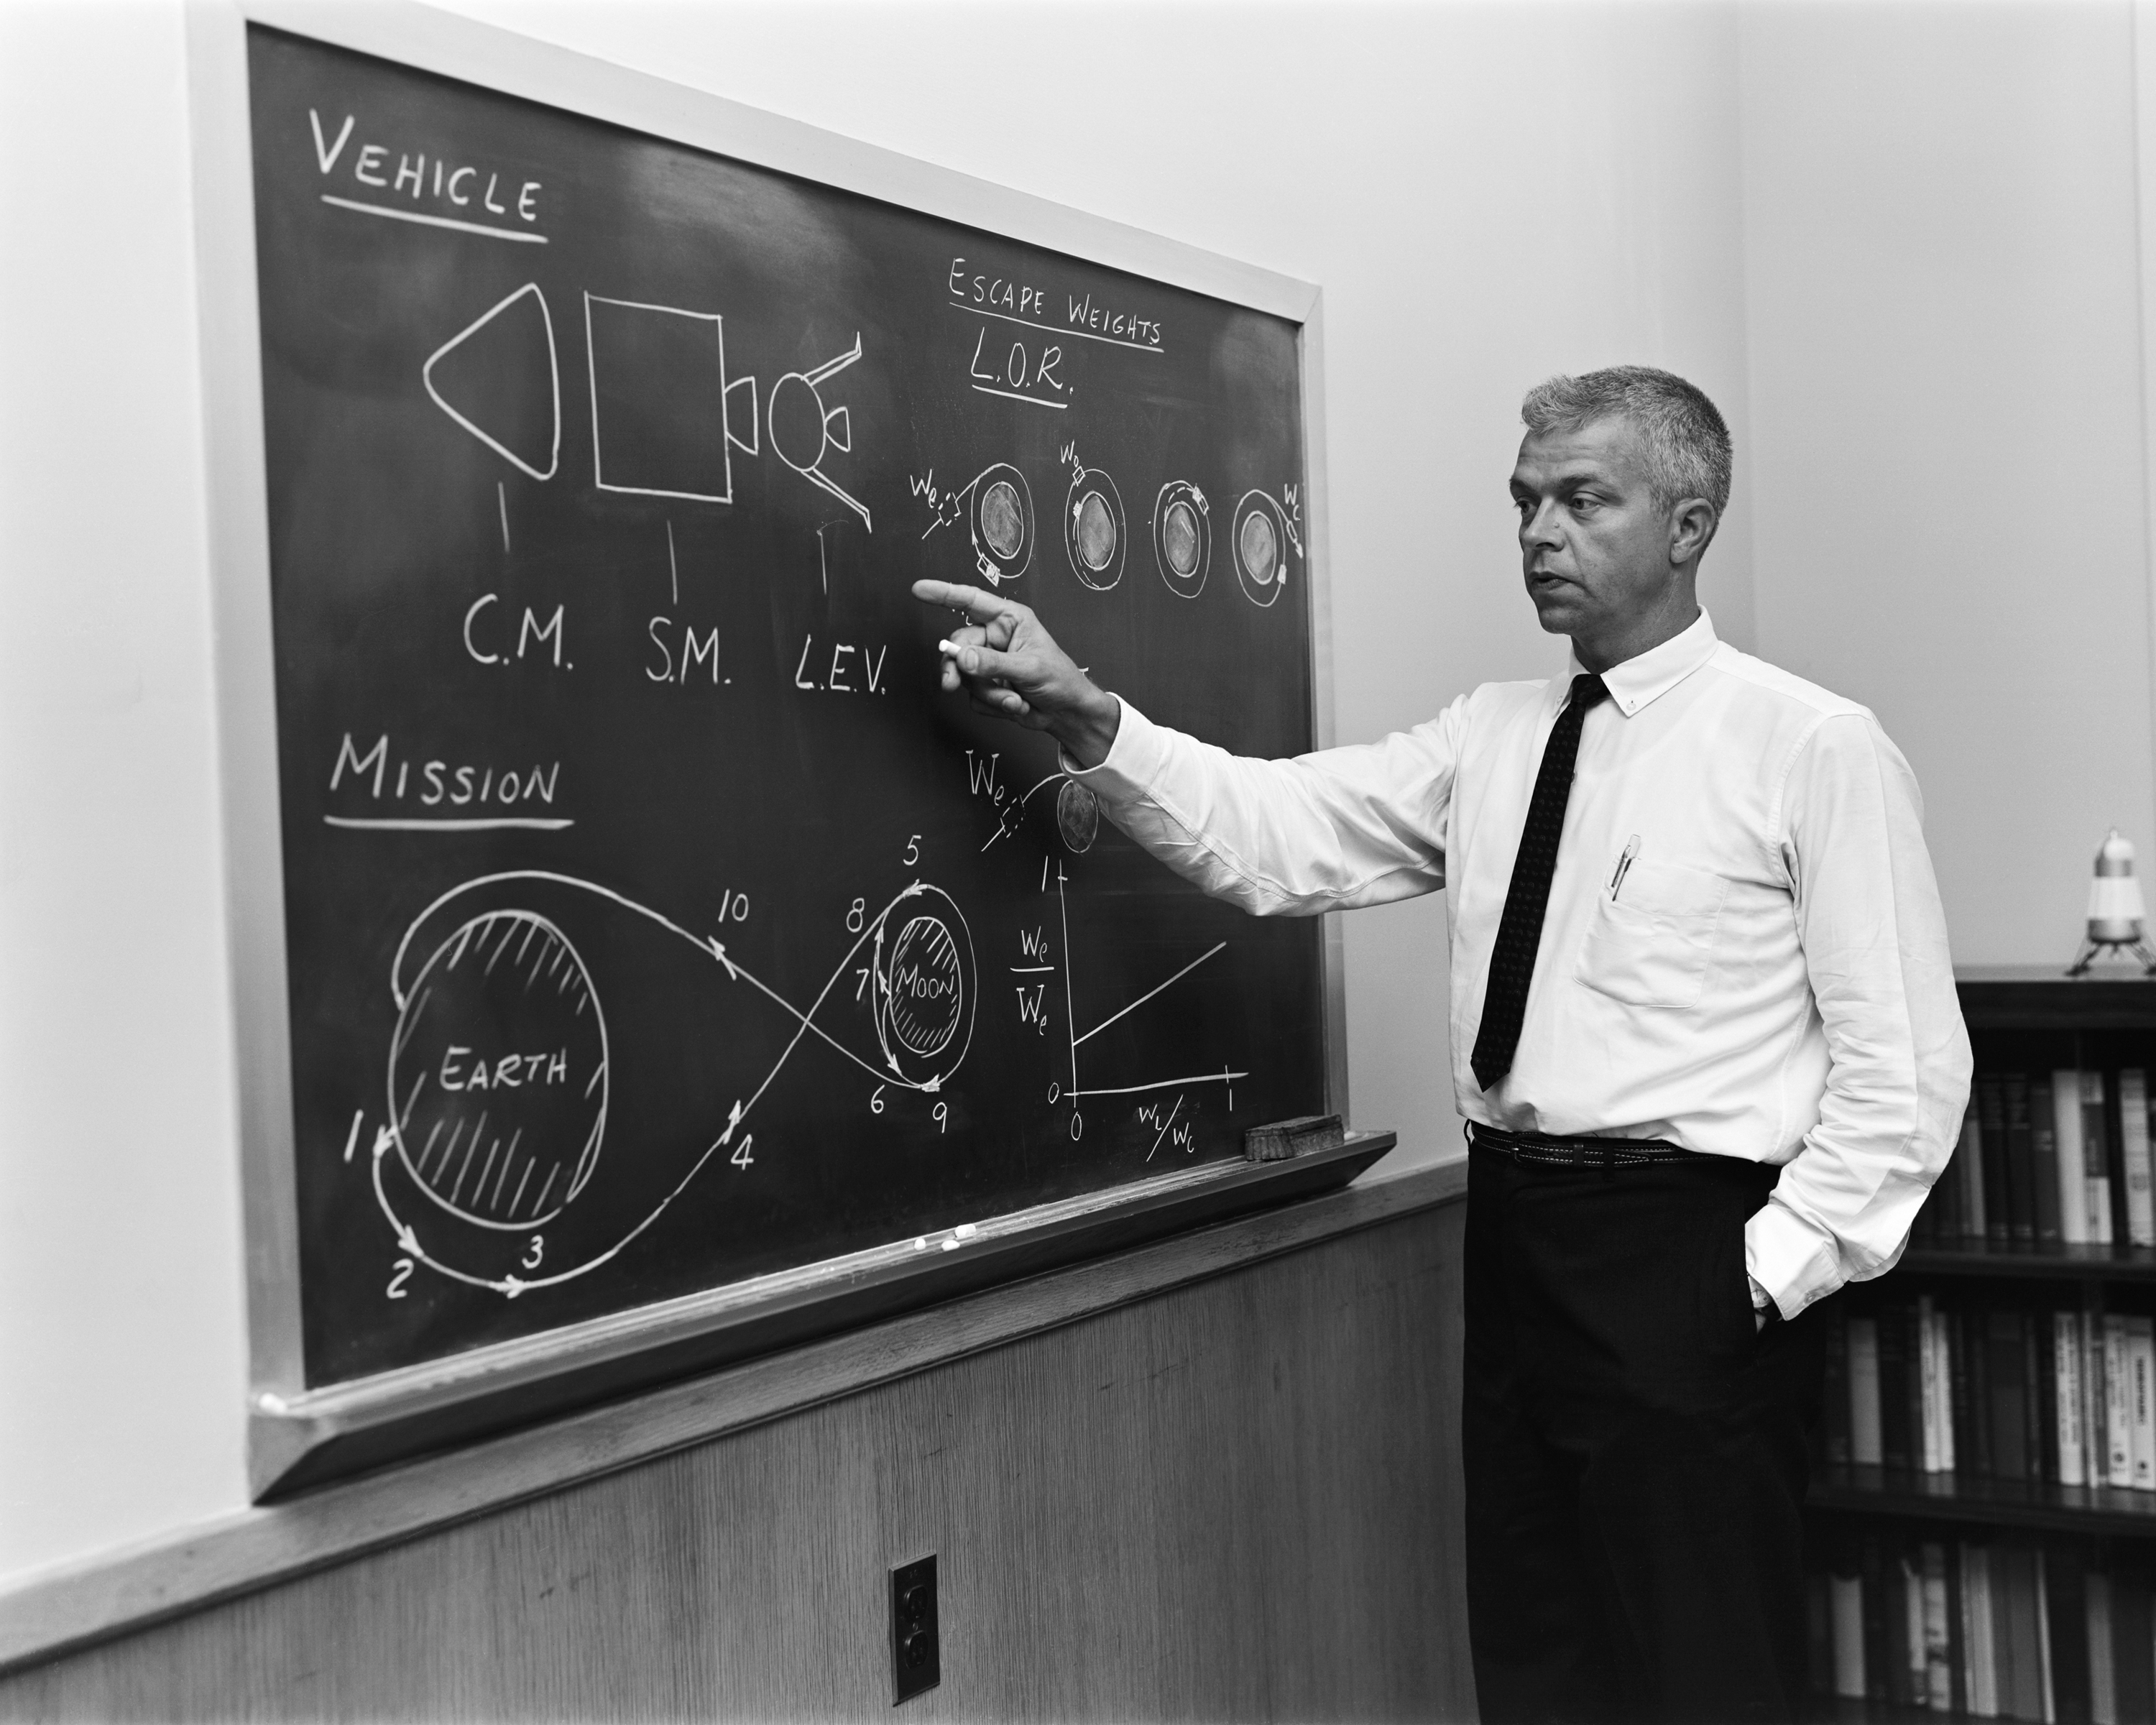 John C. Houbolt at blackboard, showing his space rendezvous concept for lunar landings. Lunar Orbital Rendezvous (LOR) would be used in the Apollo program. Although Houbolt did not invent the idea of LOR, he was the person most responsible for pushing it at NASA. Photo taken on July 24, 1962.